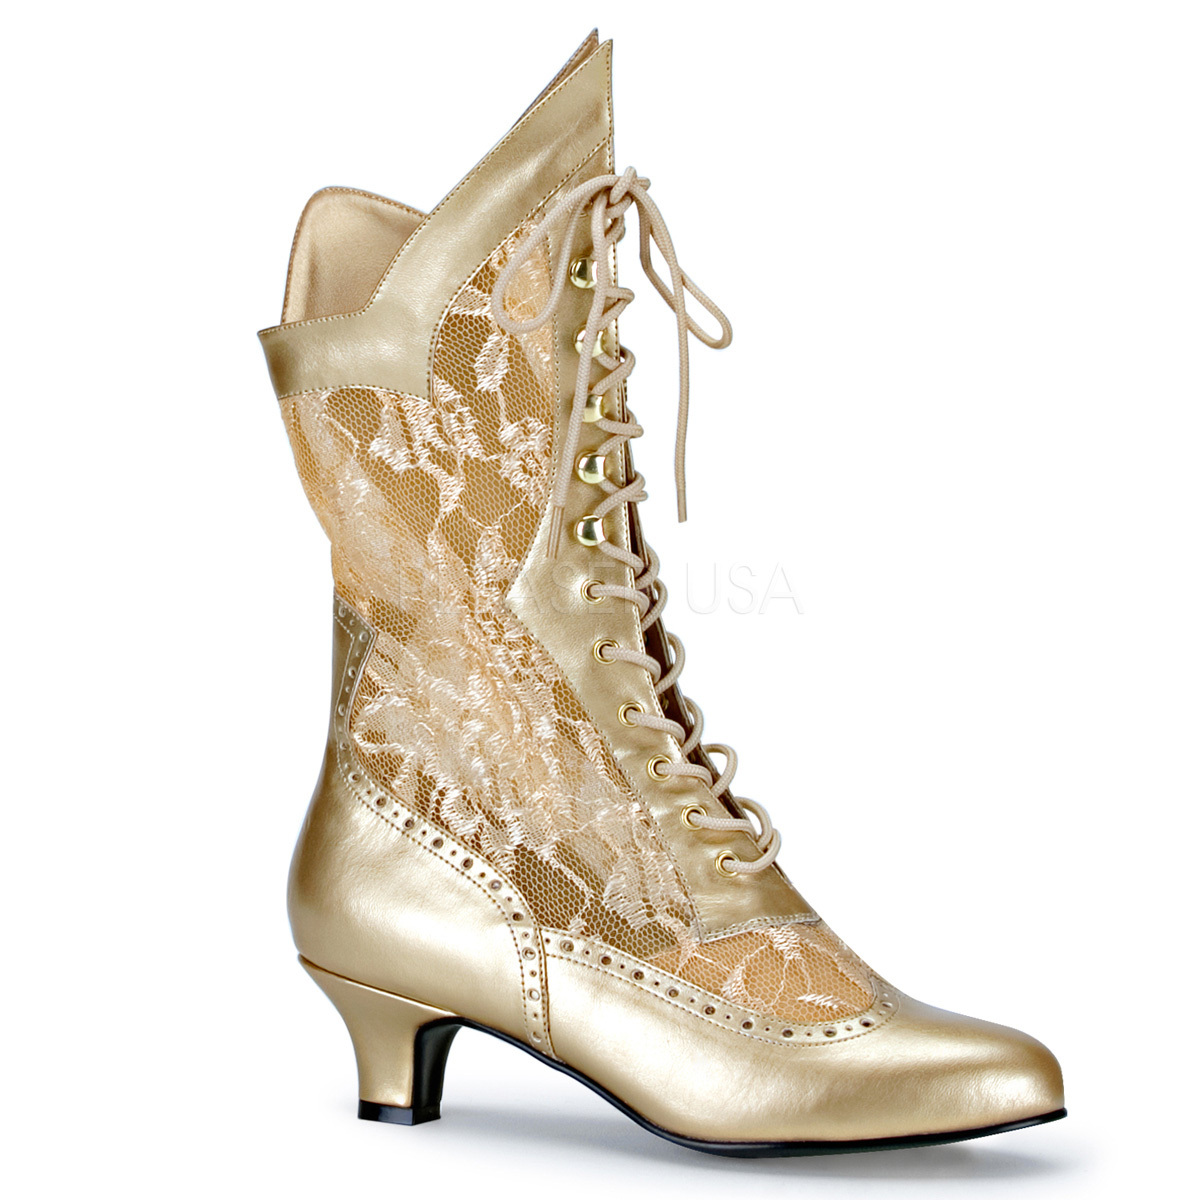 "FUNTASMA Dame-115 Series 2"" Heel Ankle-High Boot - Gold Pu-Lace"